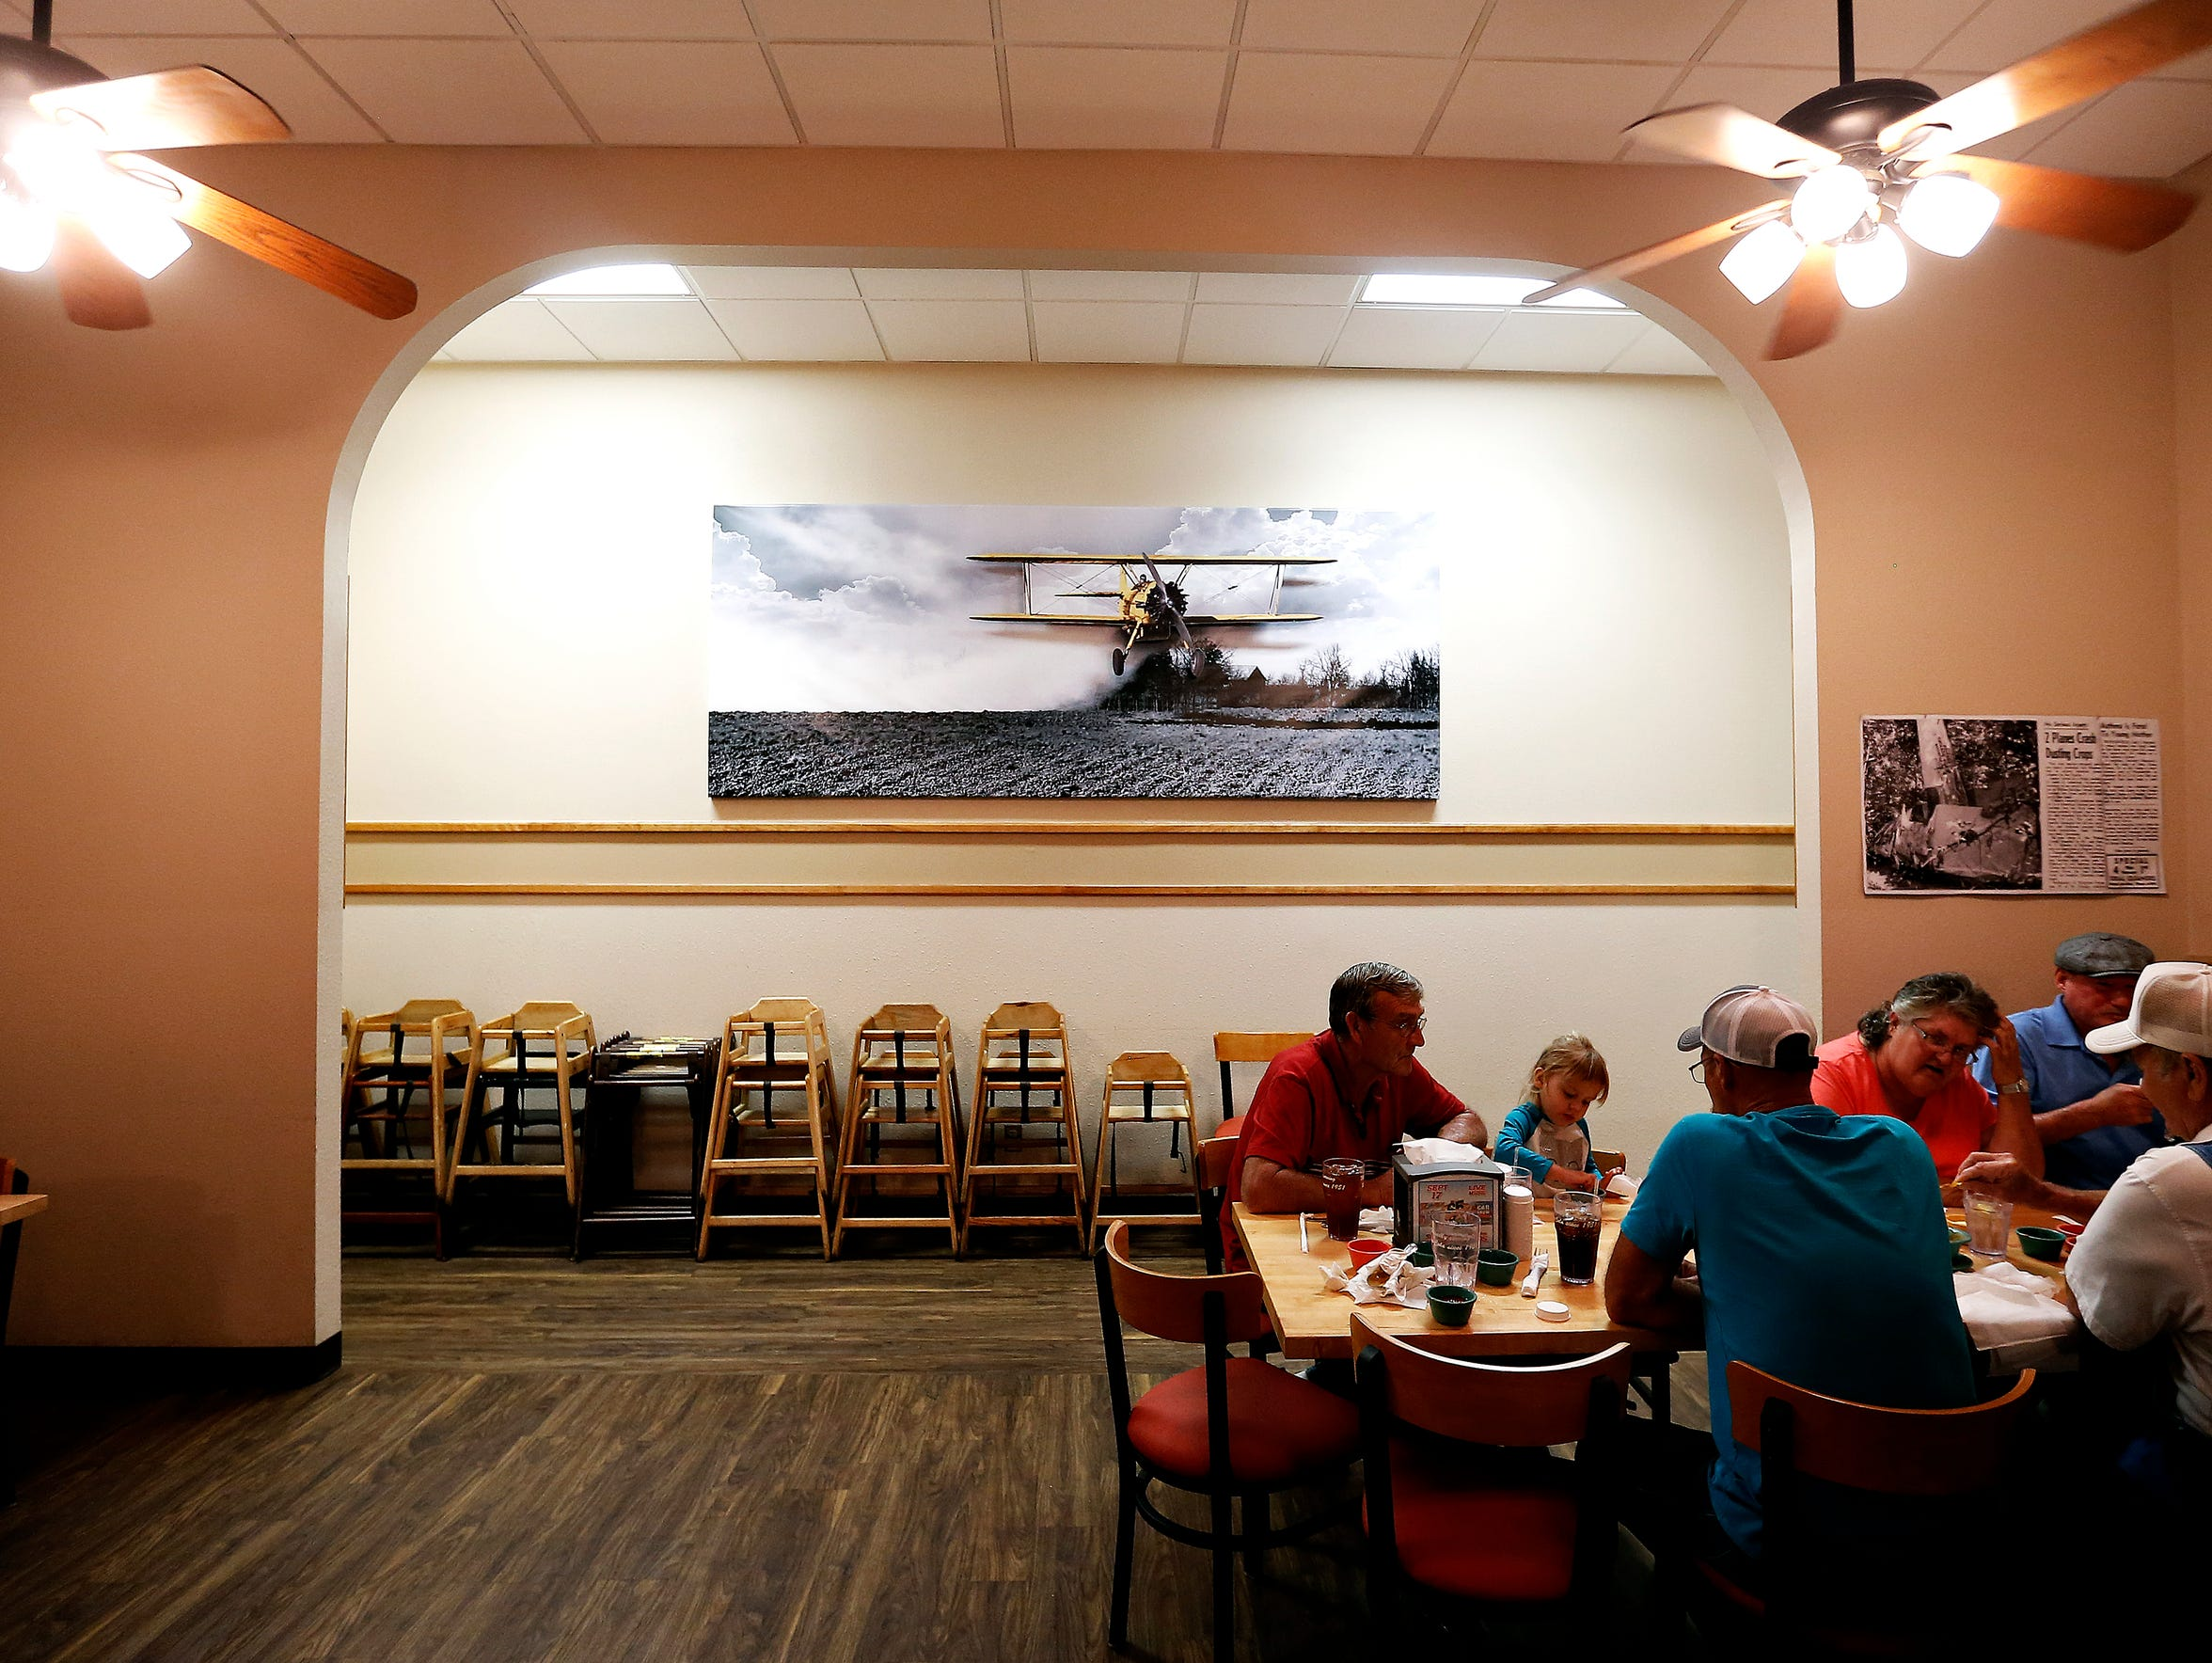 Patrons dine in front of a large photograph displaying